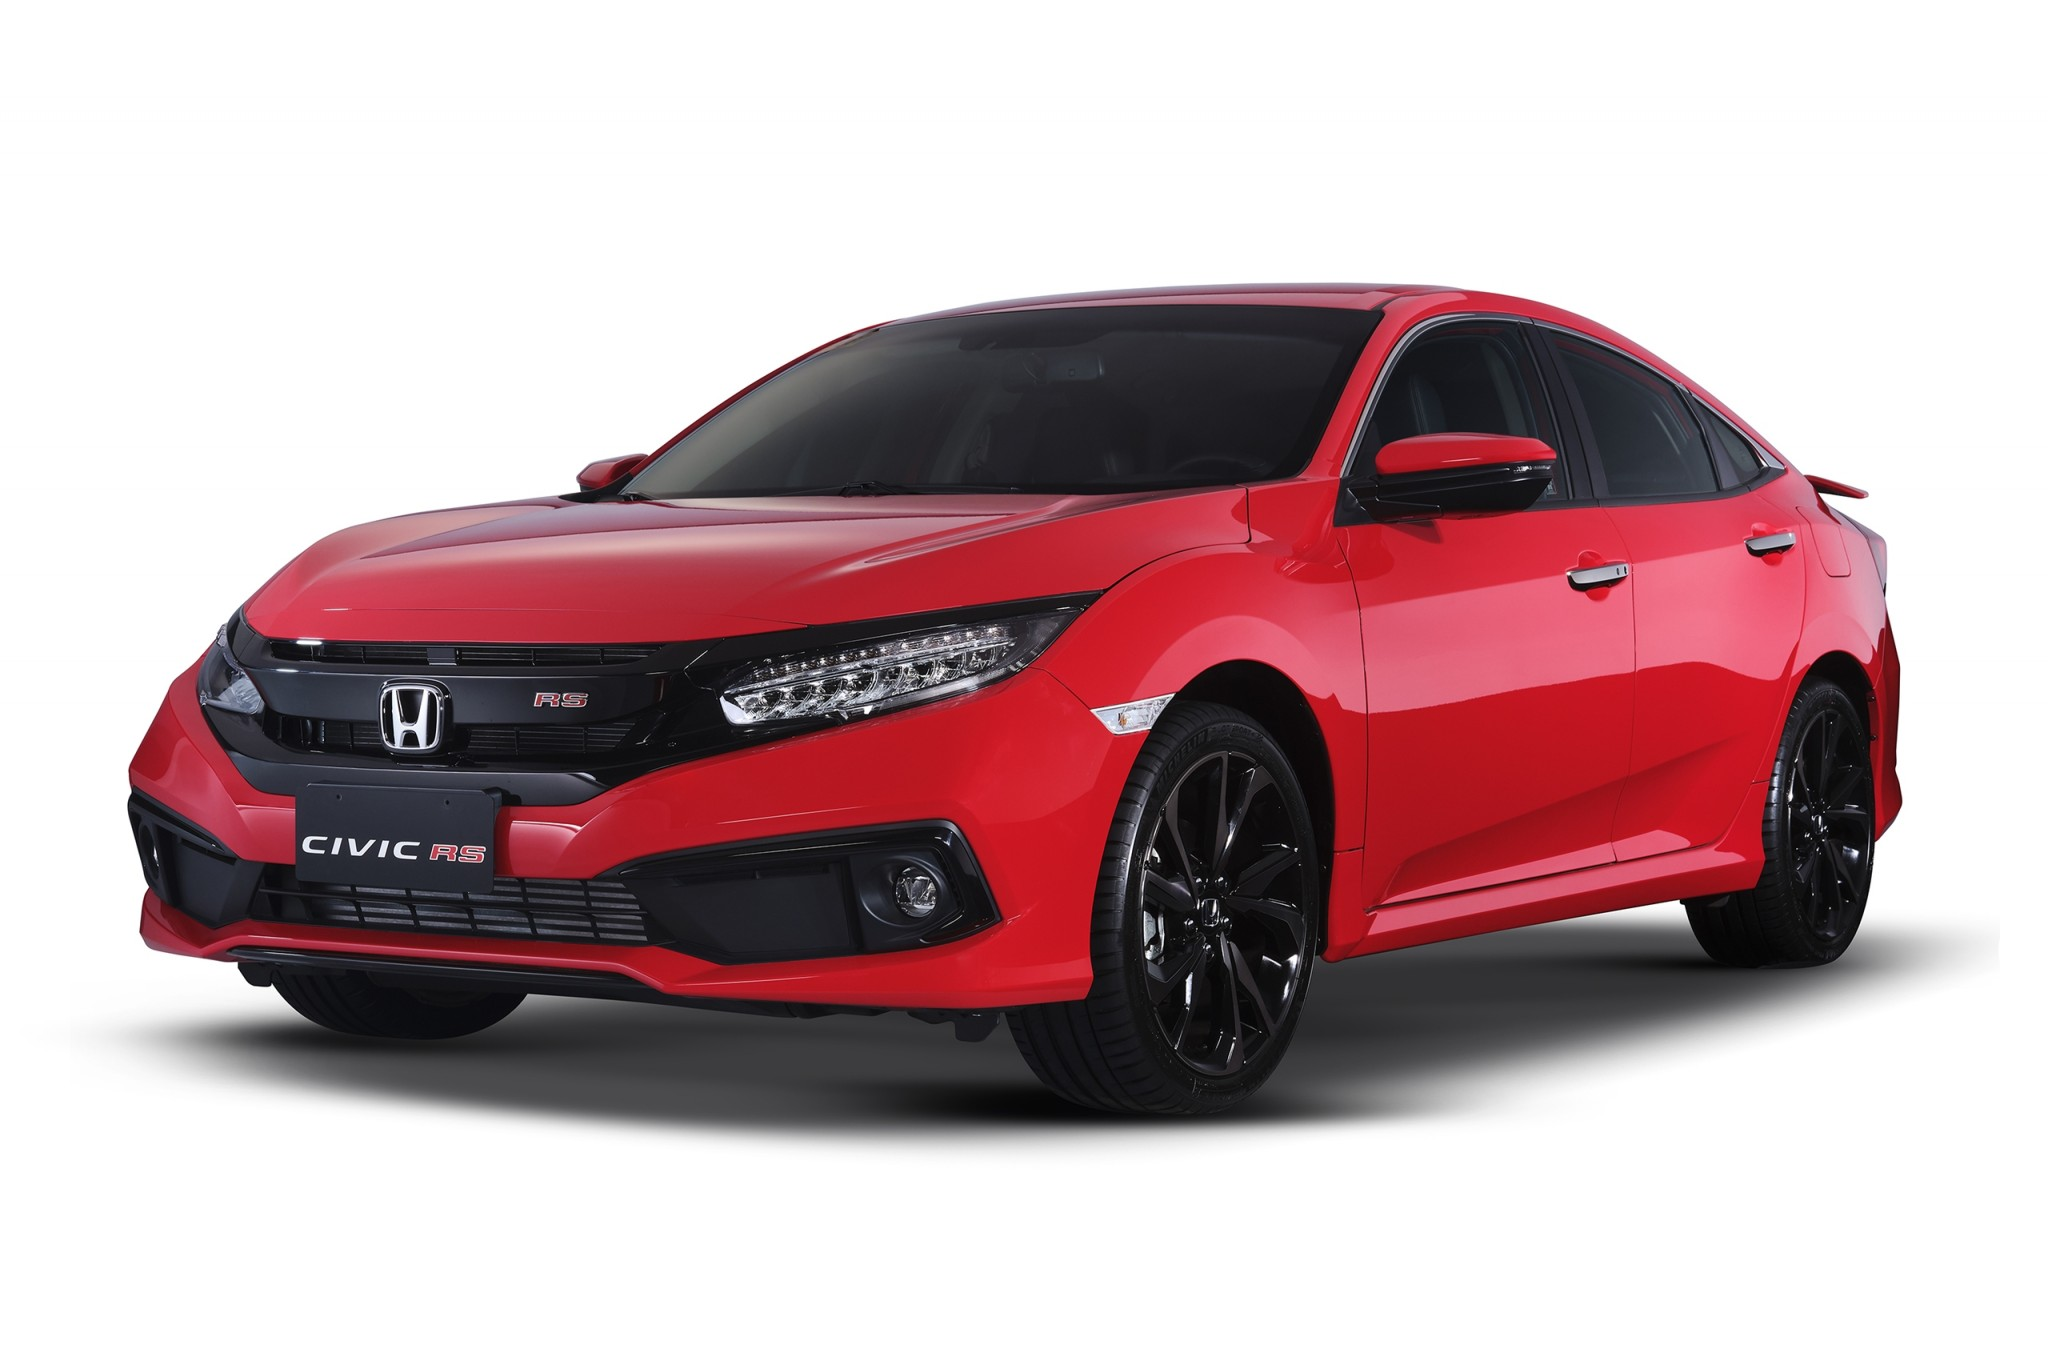 New Honda Civic 1.5 Turbo RS Launched in Philippines 5